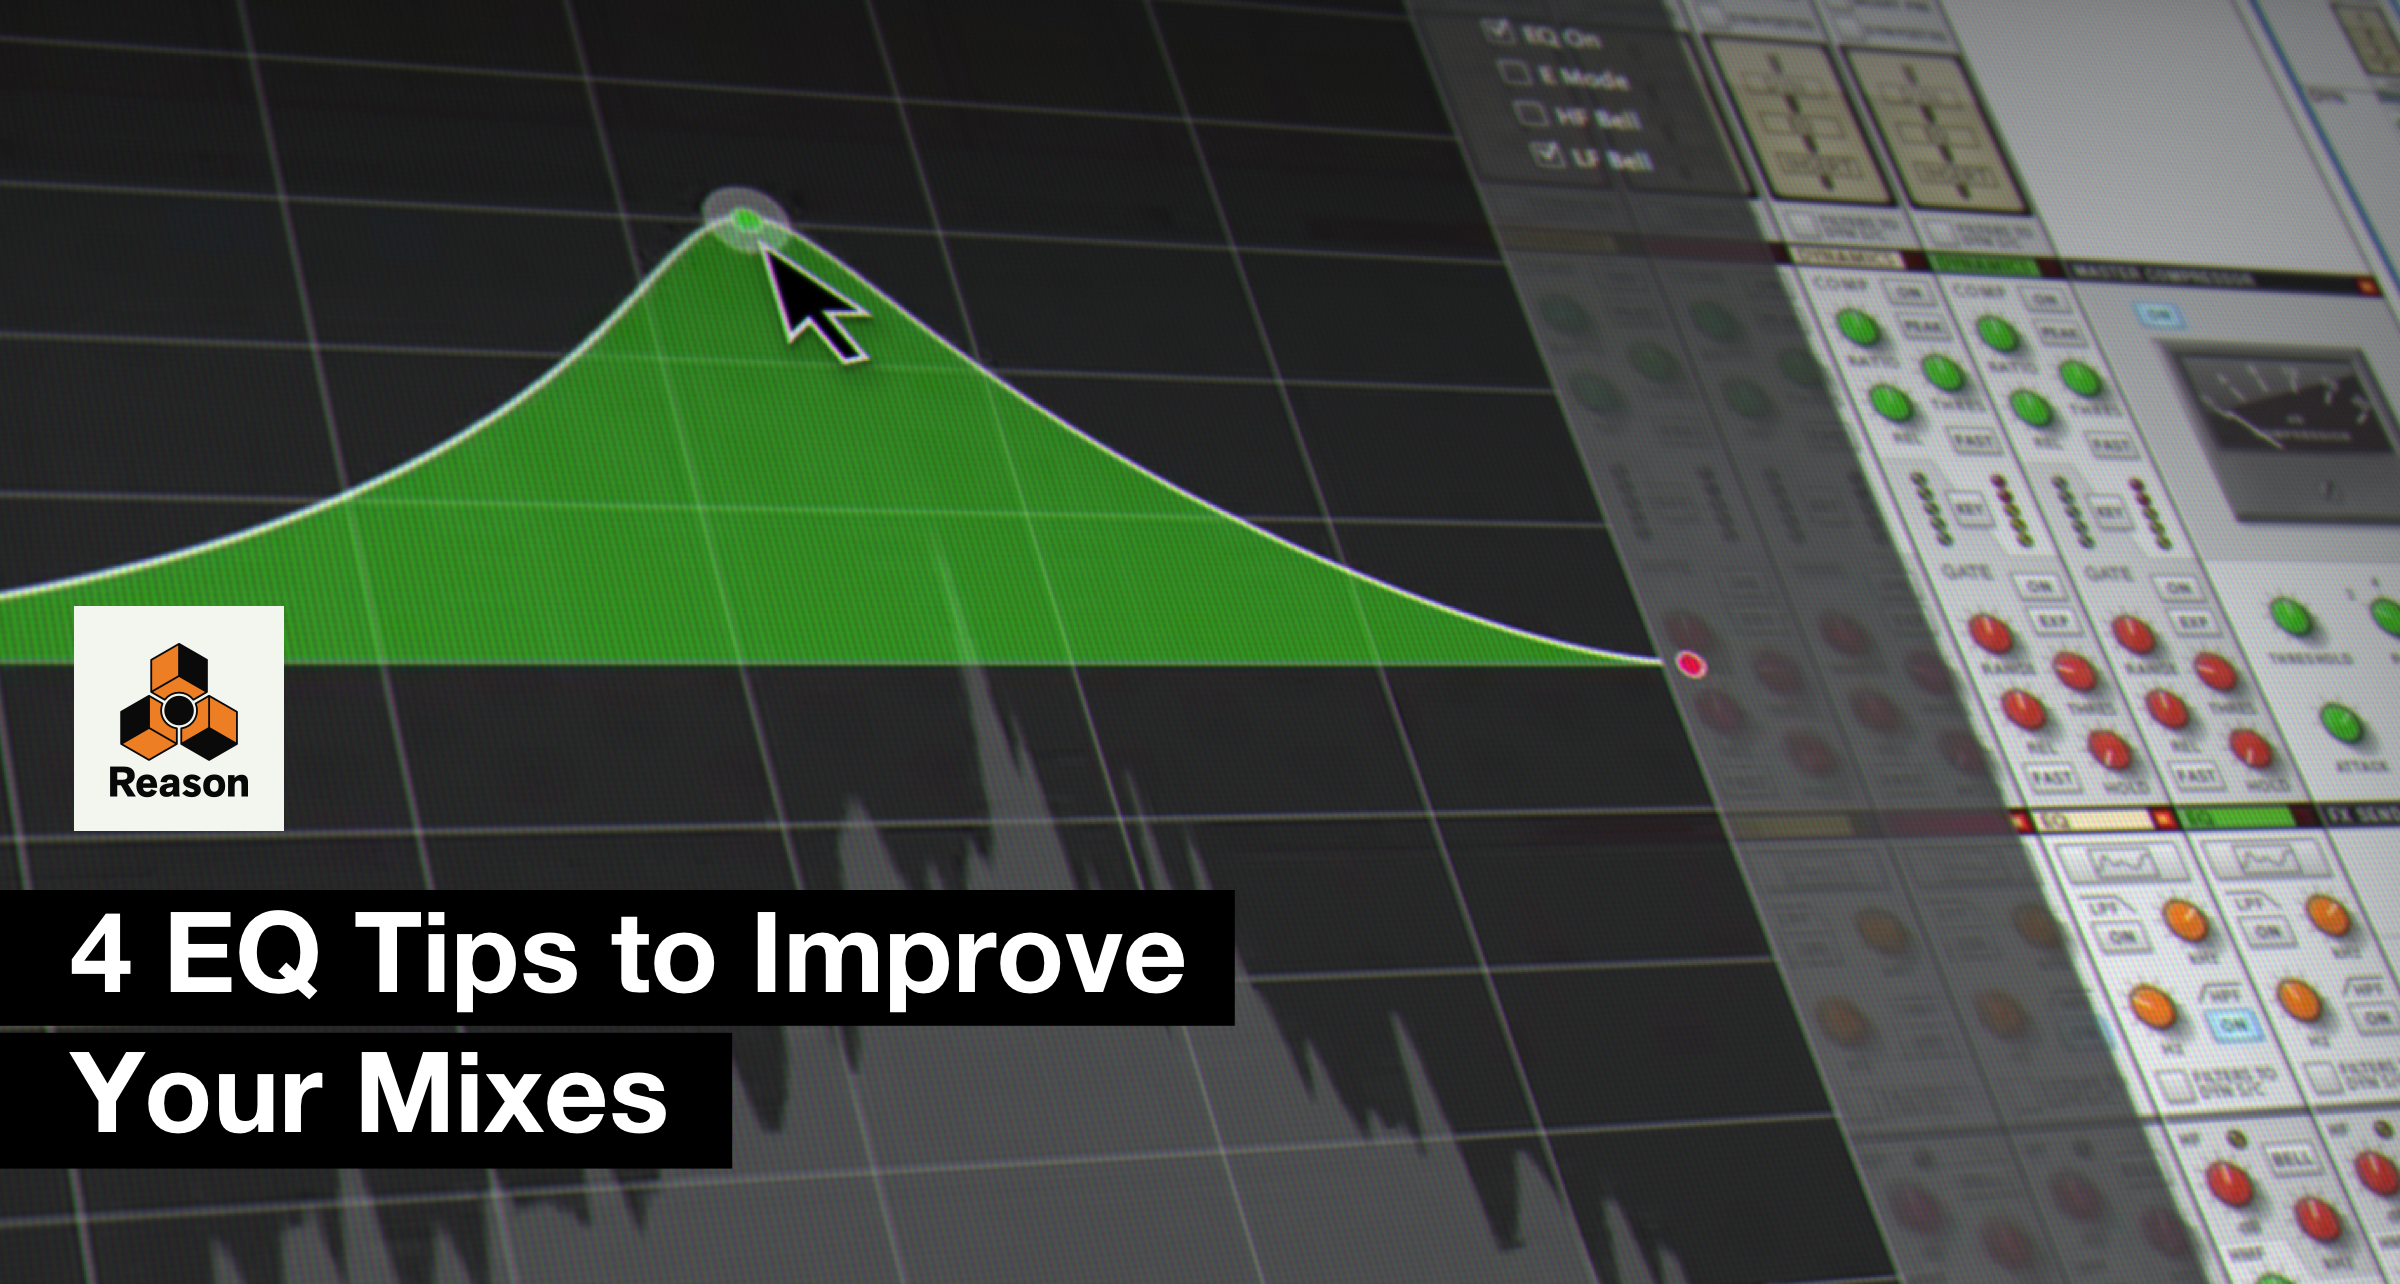 Tutorial: 4 EQ Tips to Improve Your Mixes